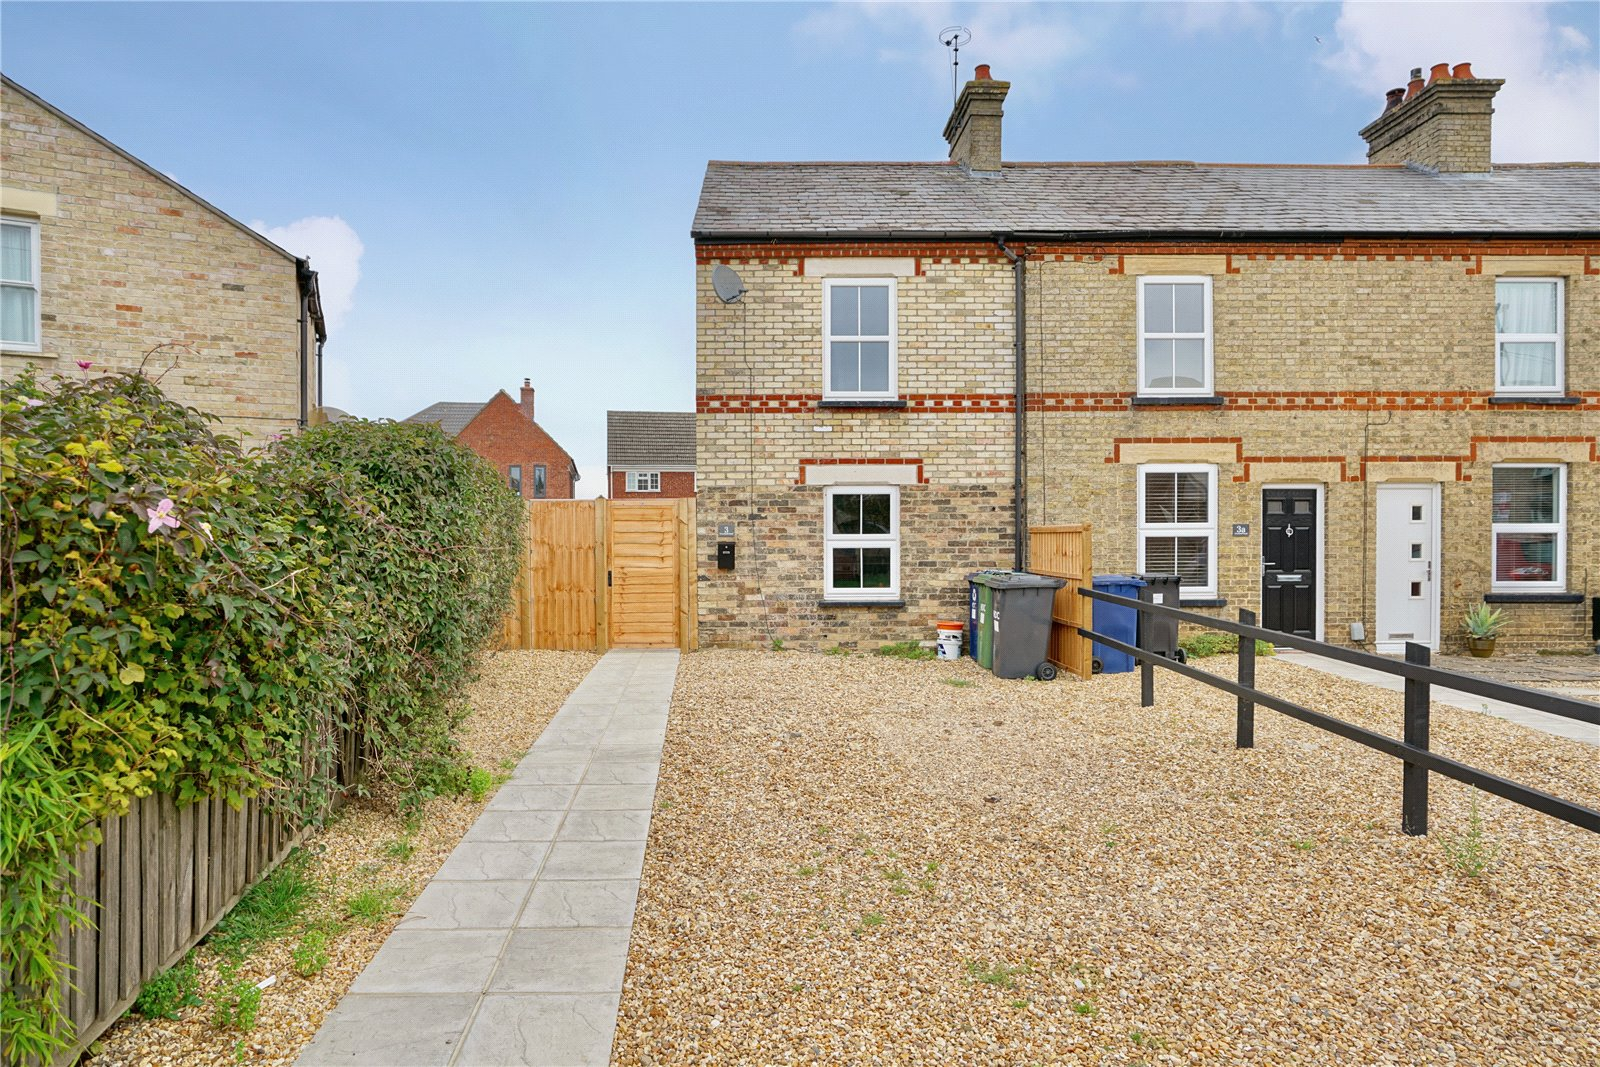 2 bed house for sale in Crosshall Road, Eaton Ford, PE19